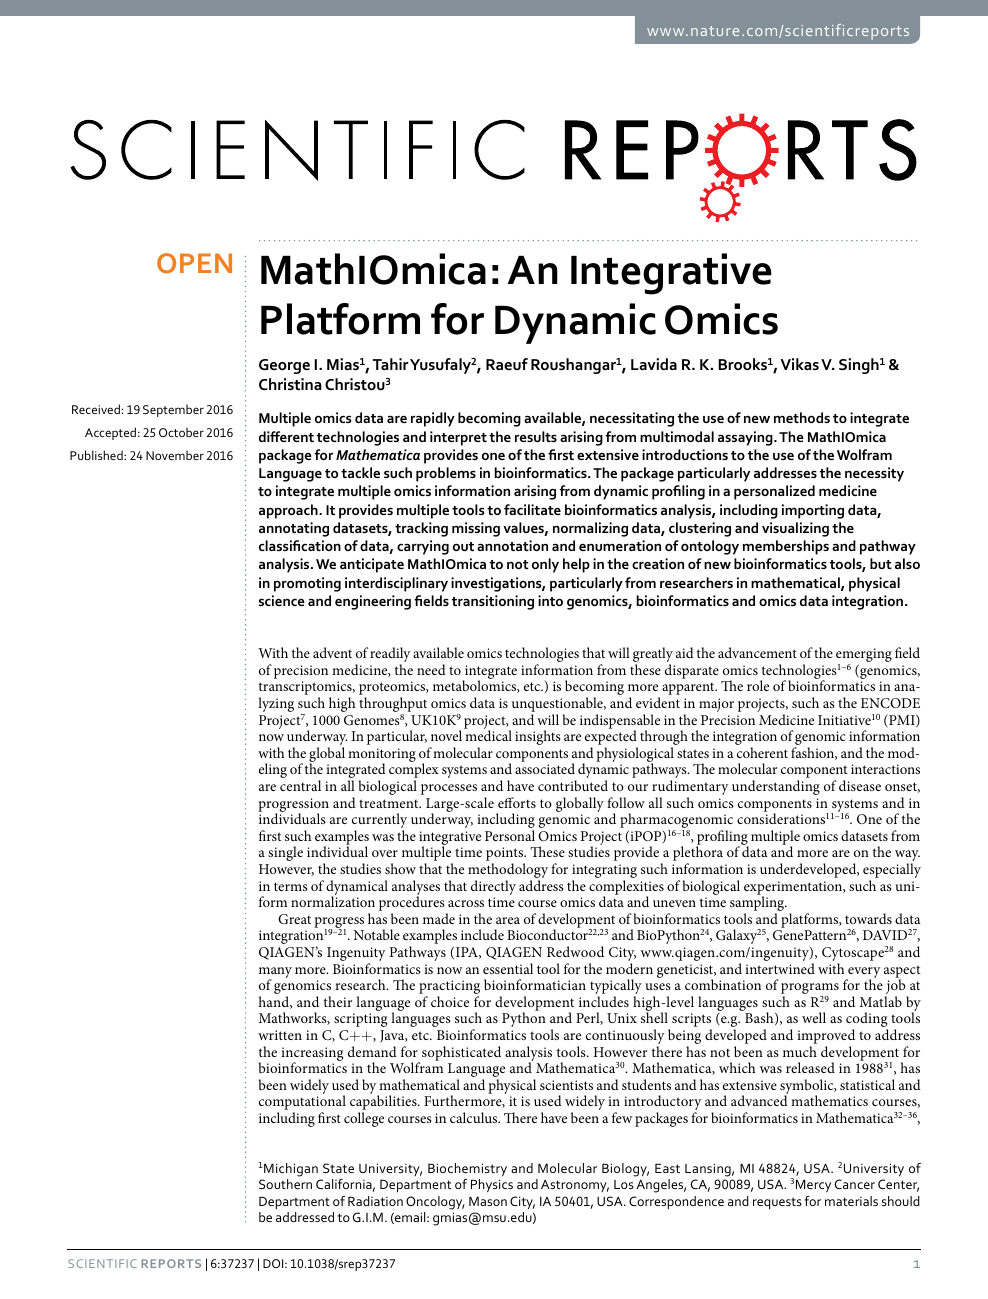 MathIOmica: An Integrative Platform for Dynamic Omics